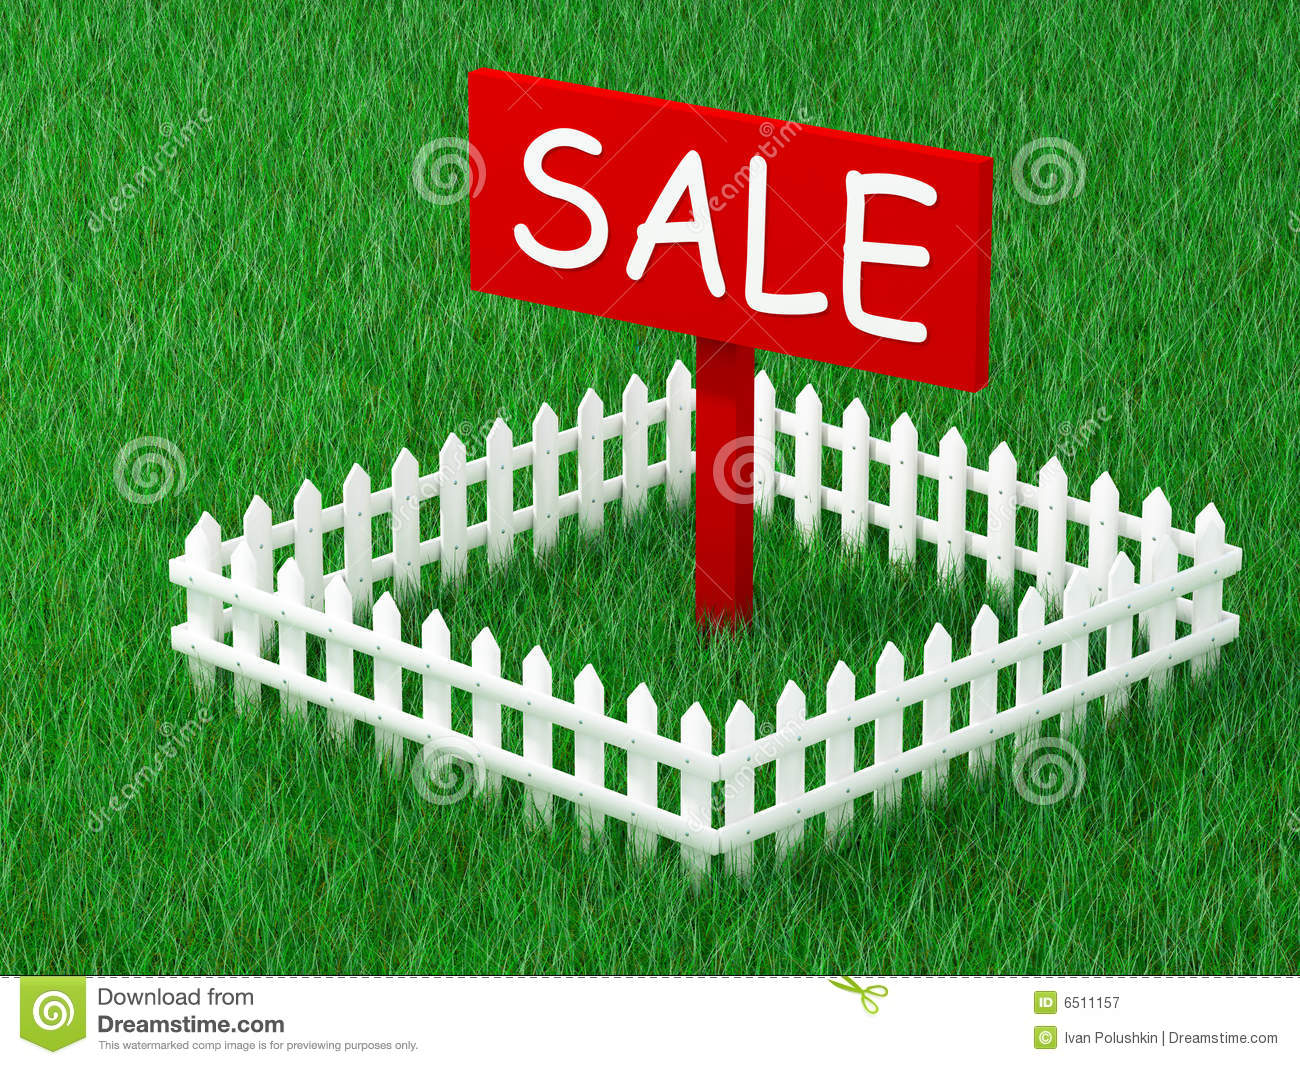 Clipart land for sale.